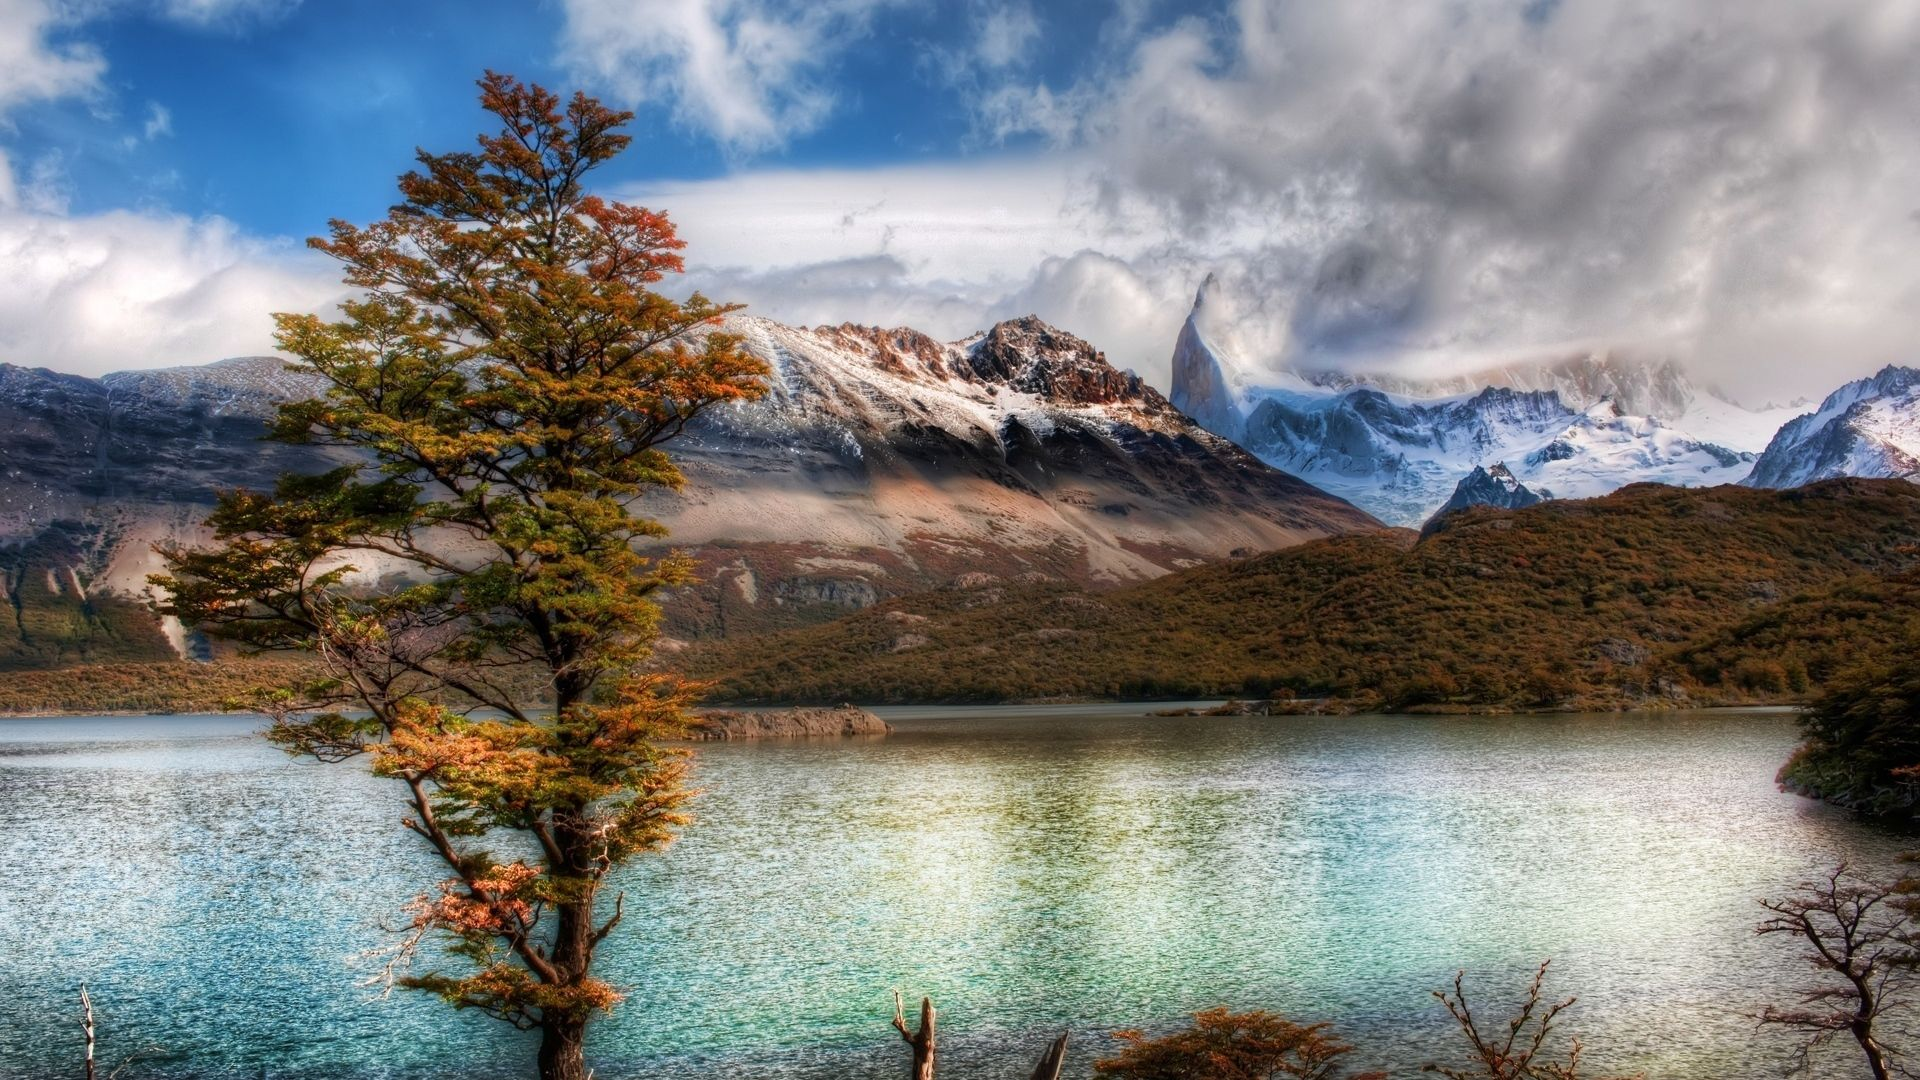 Of Wallpapers Images Of Mountains And Lakes